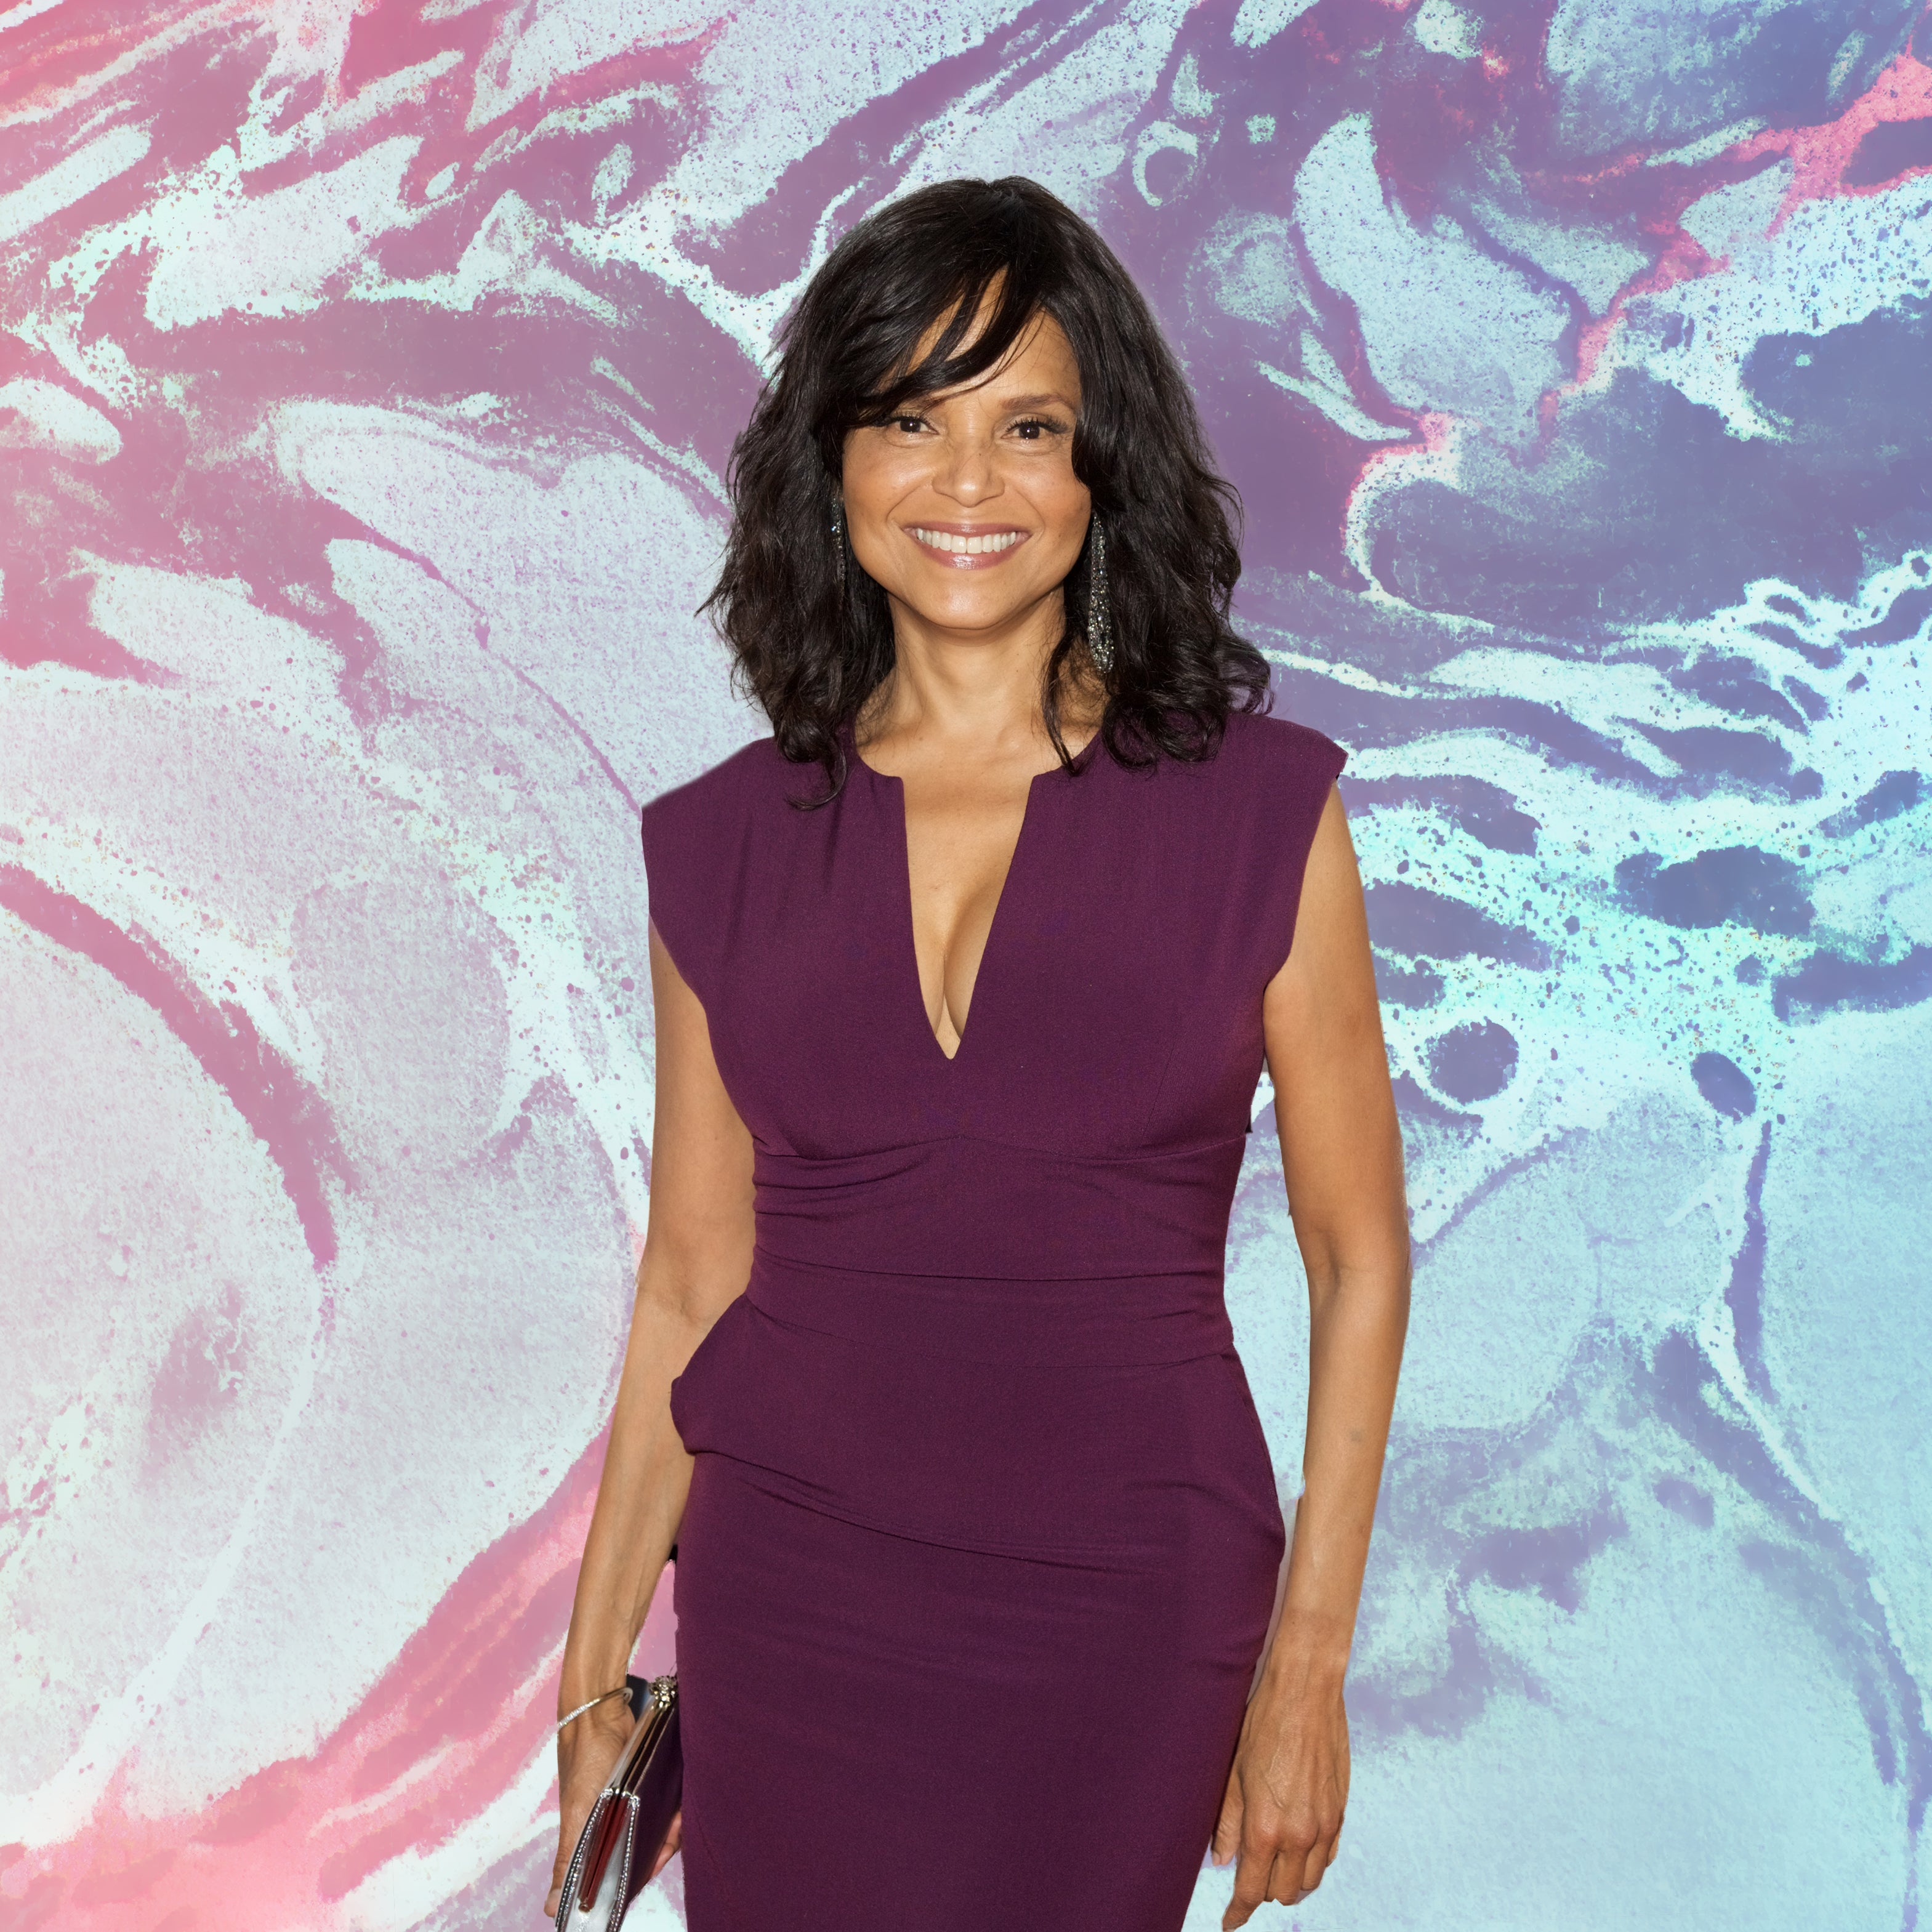 Victoria Rowell nude (76 foto and video), Sexy, Paparazzi, Instagram, legs 2015